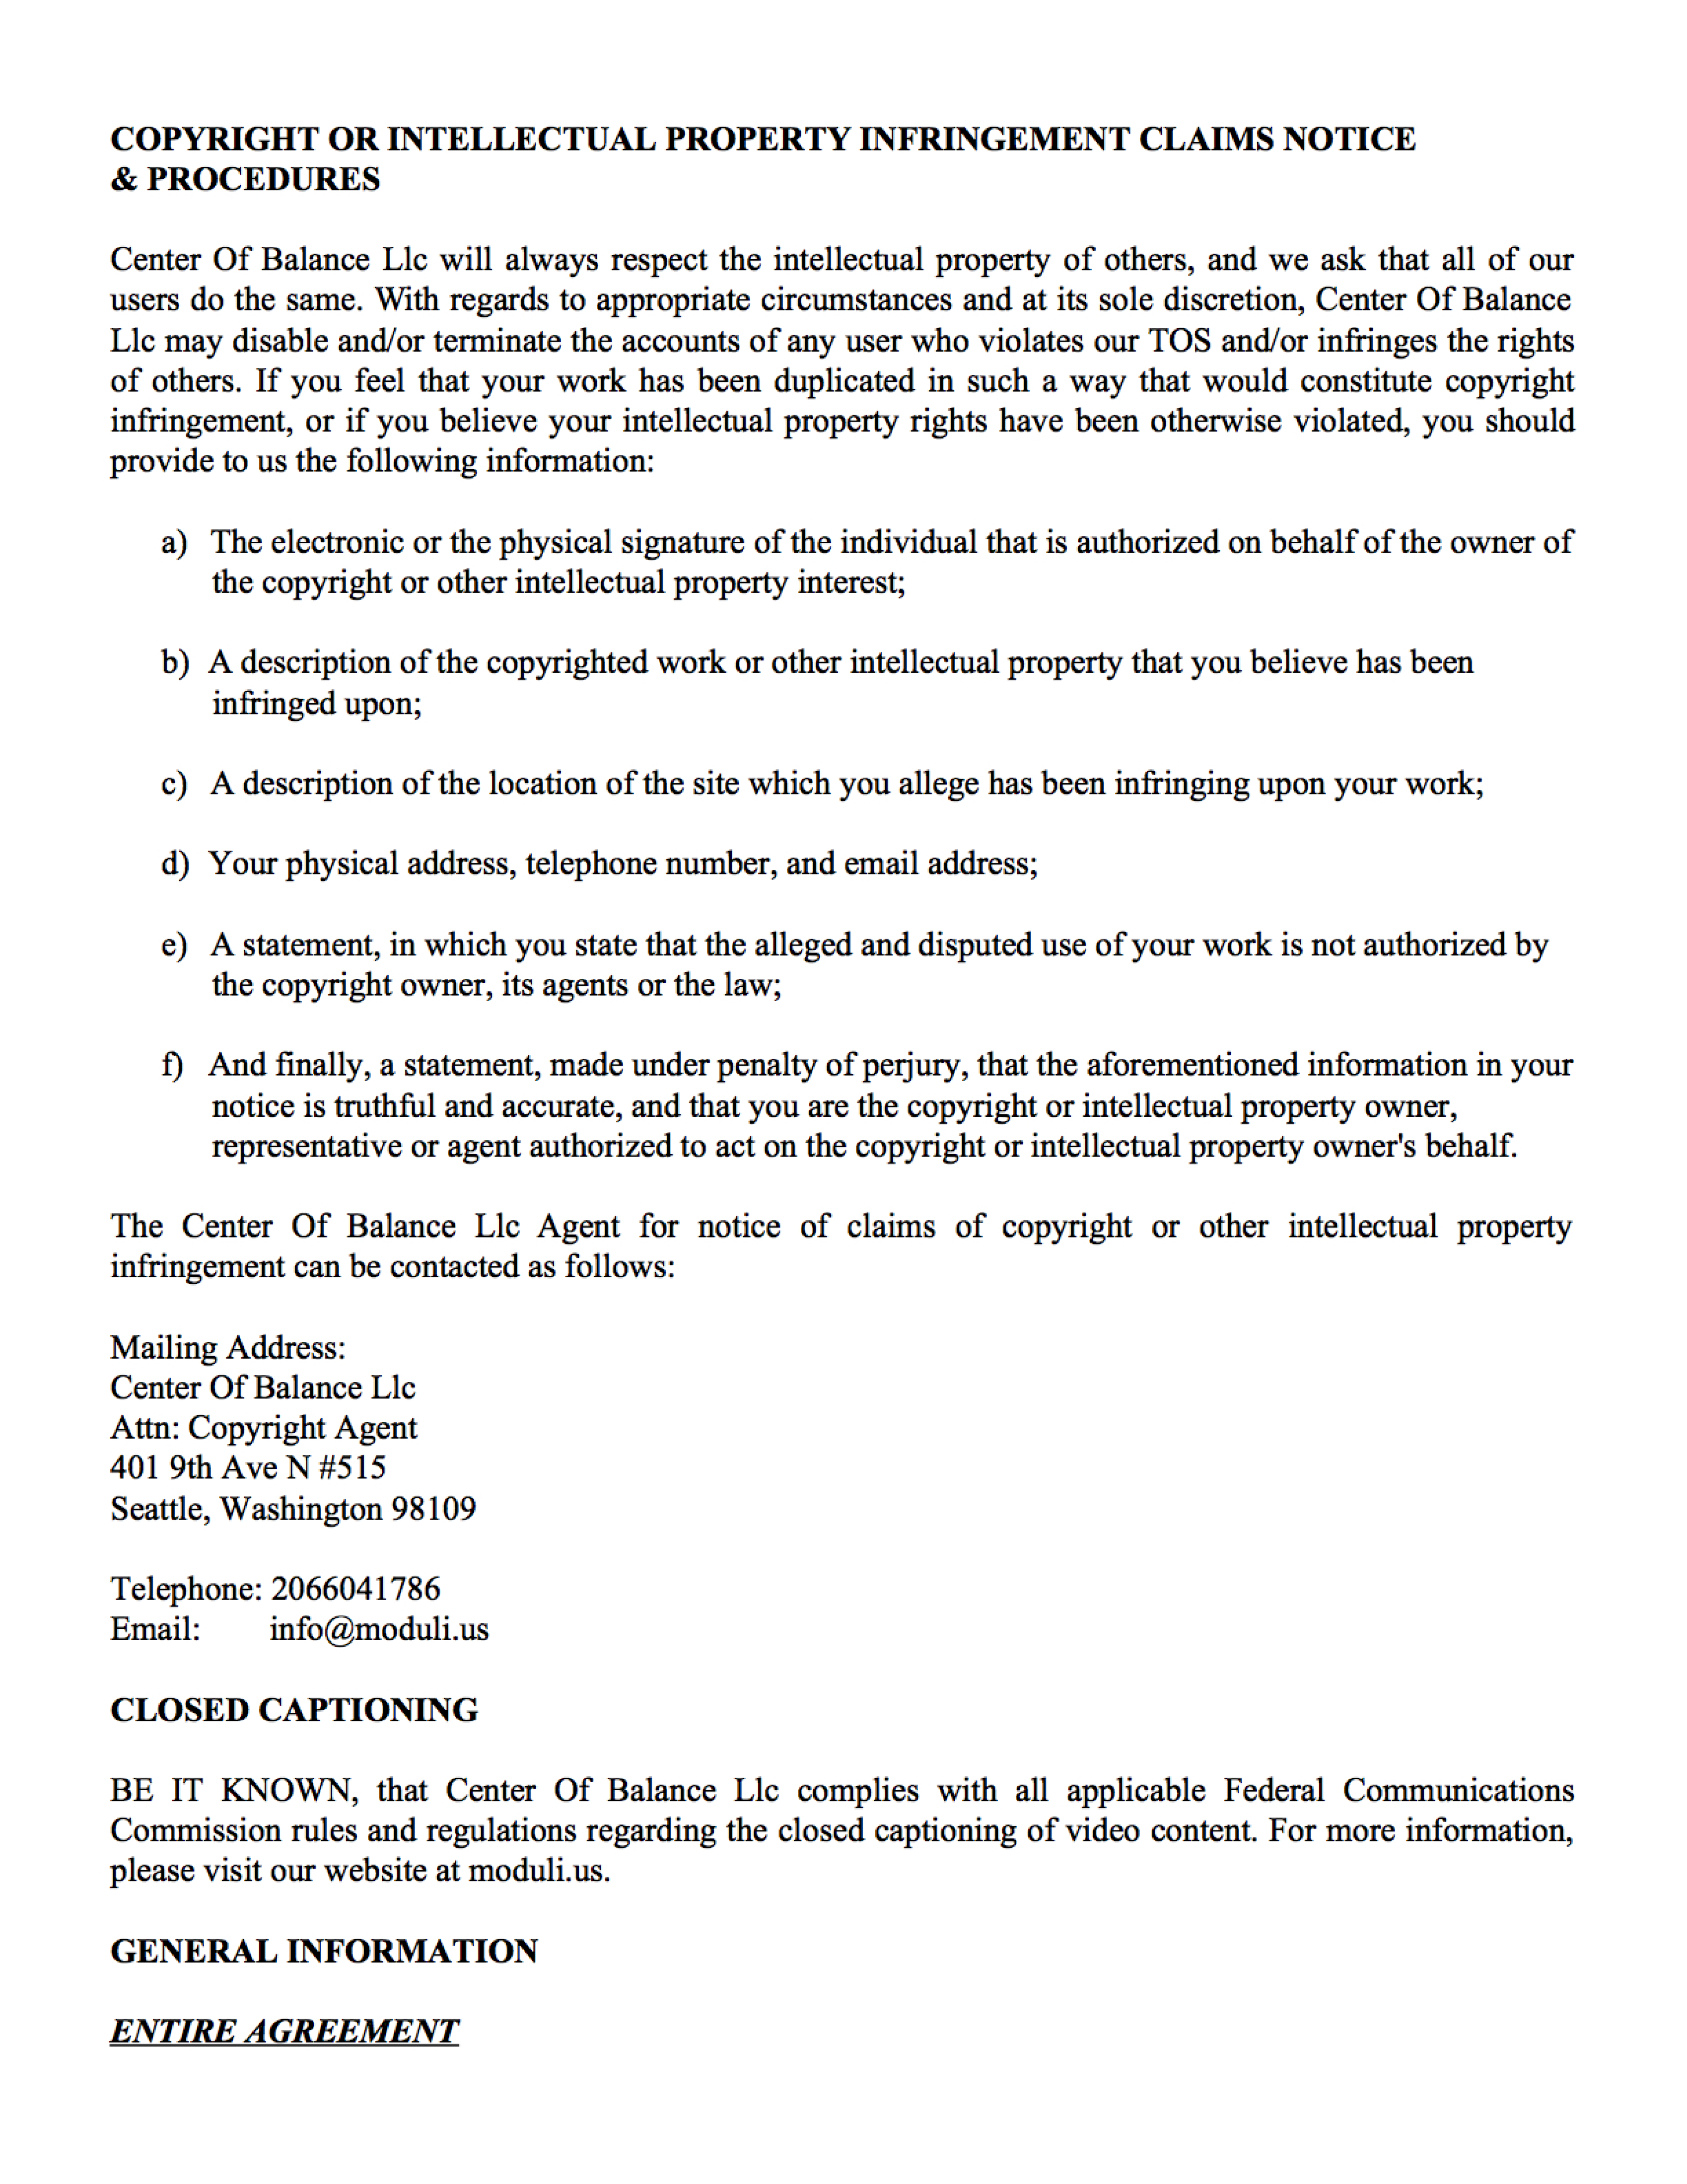 terms-and-conditions-b-page-12.png